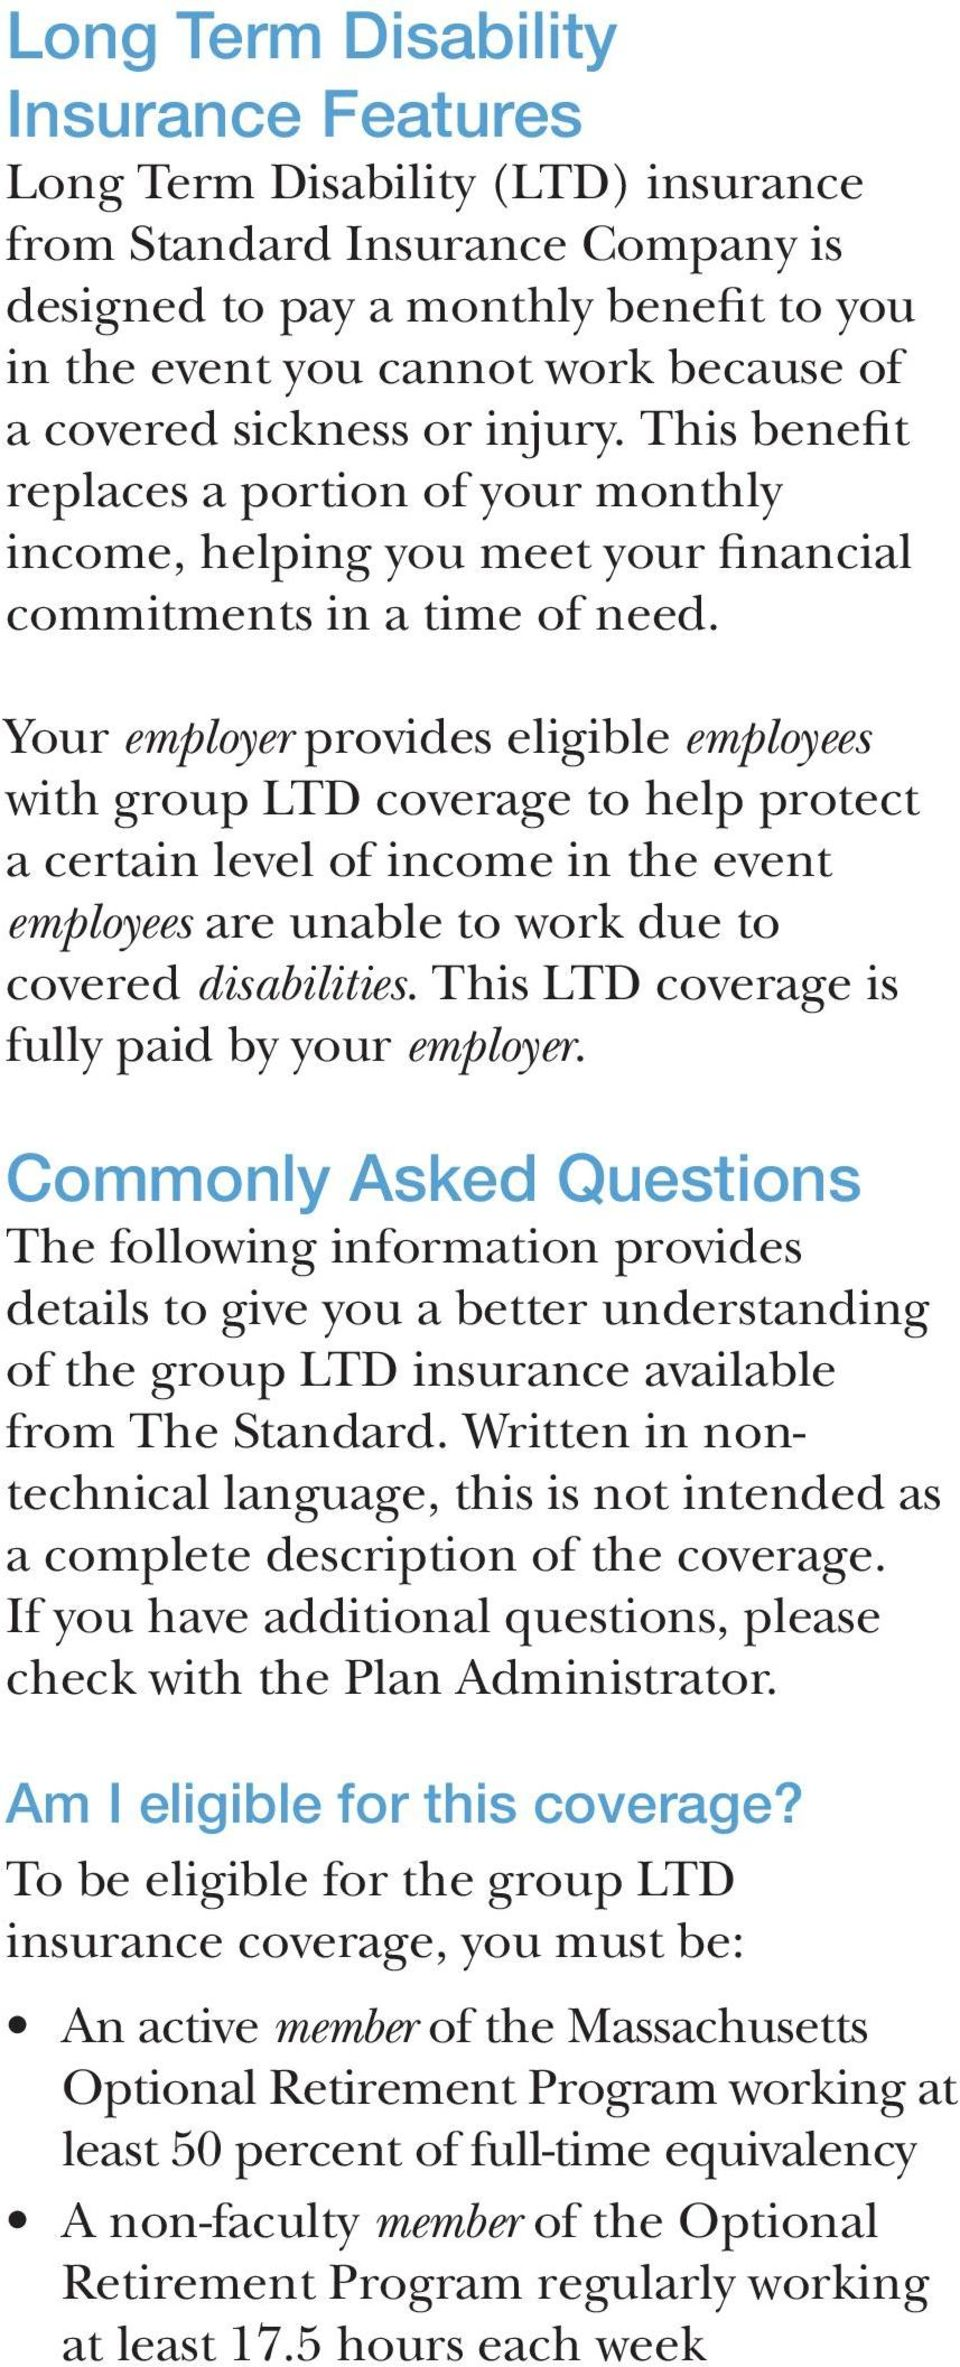 Your employer provides eligible employees with group LTD coverage to help protect a certain level of income in the event employees are unable to work due to covered disabilities.